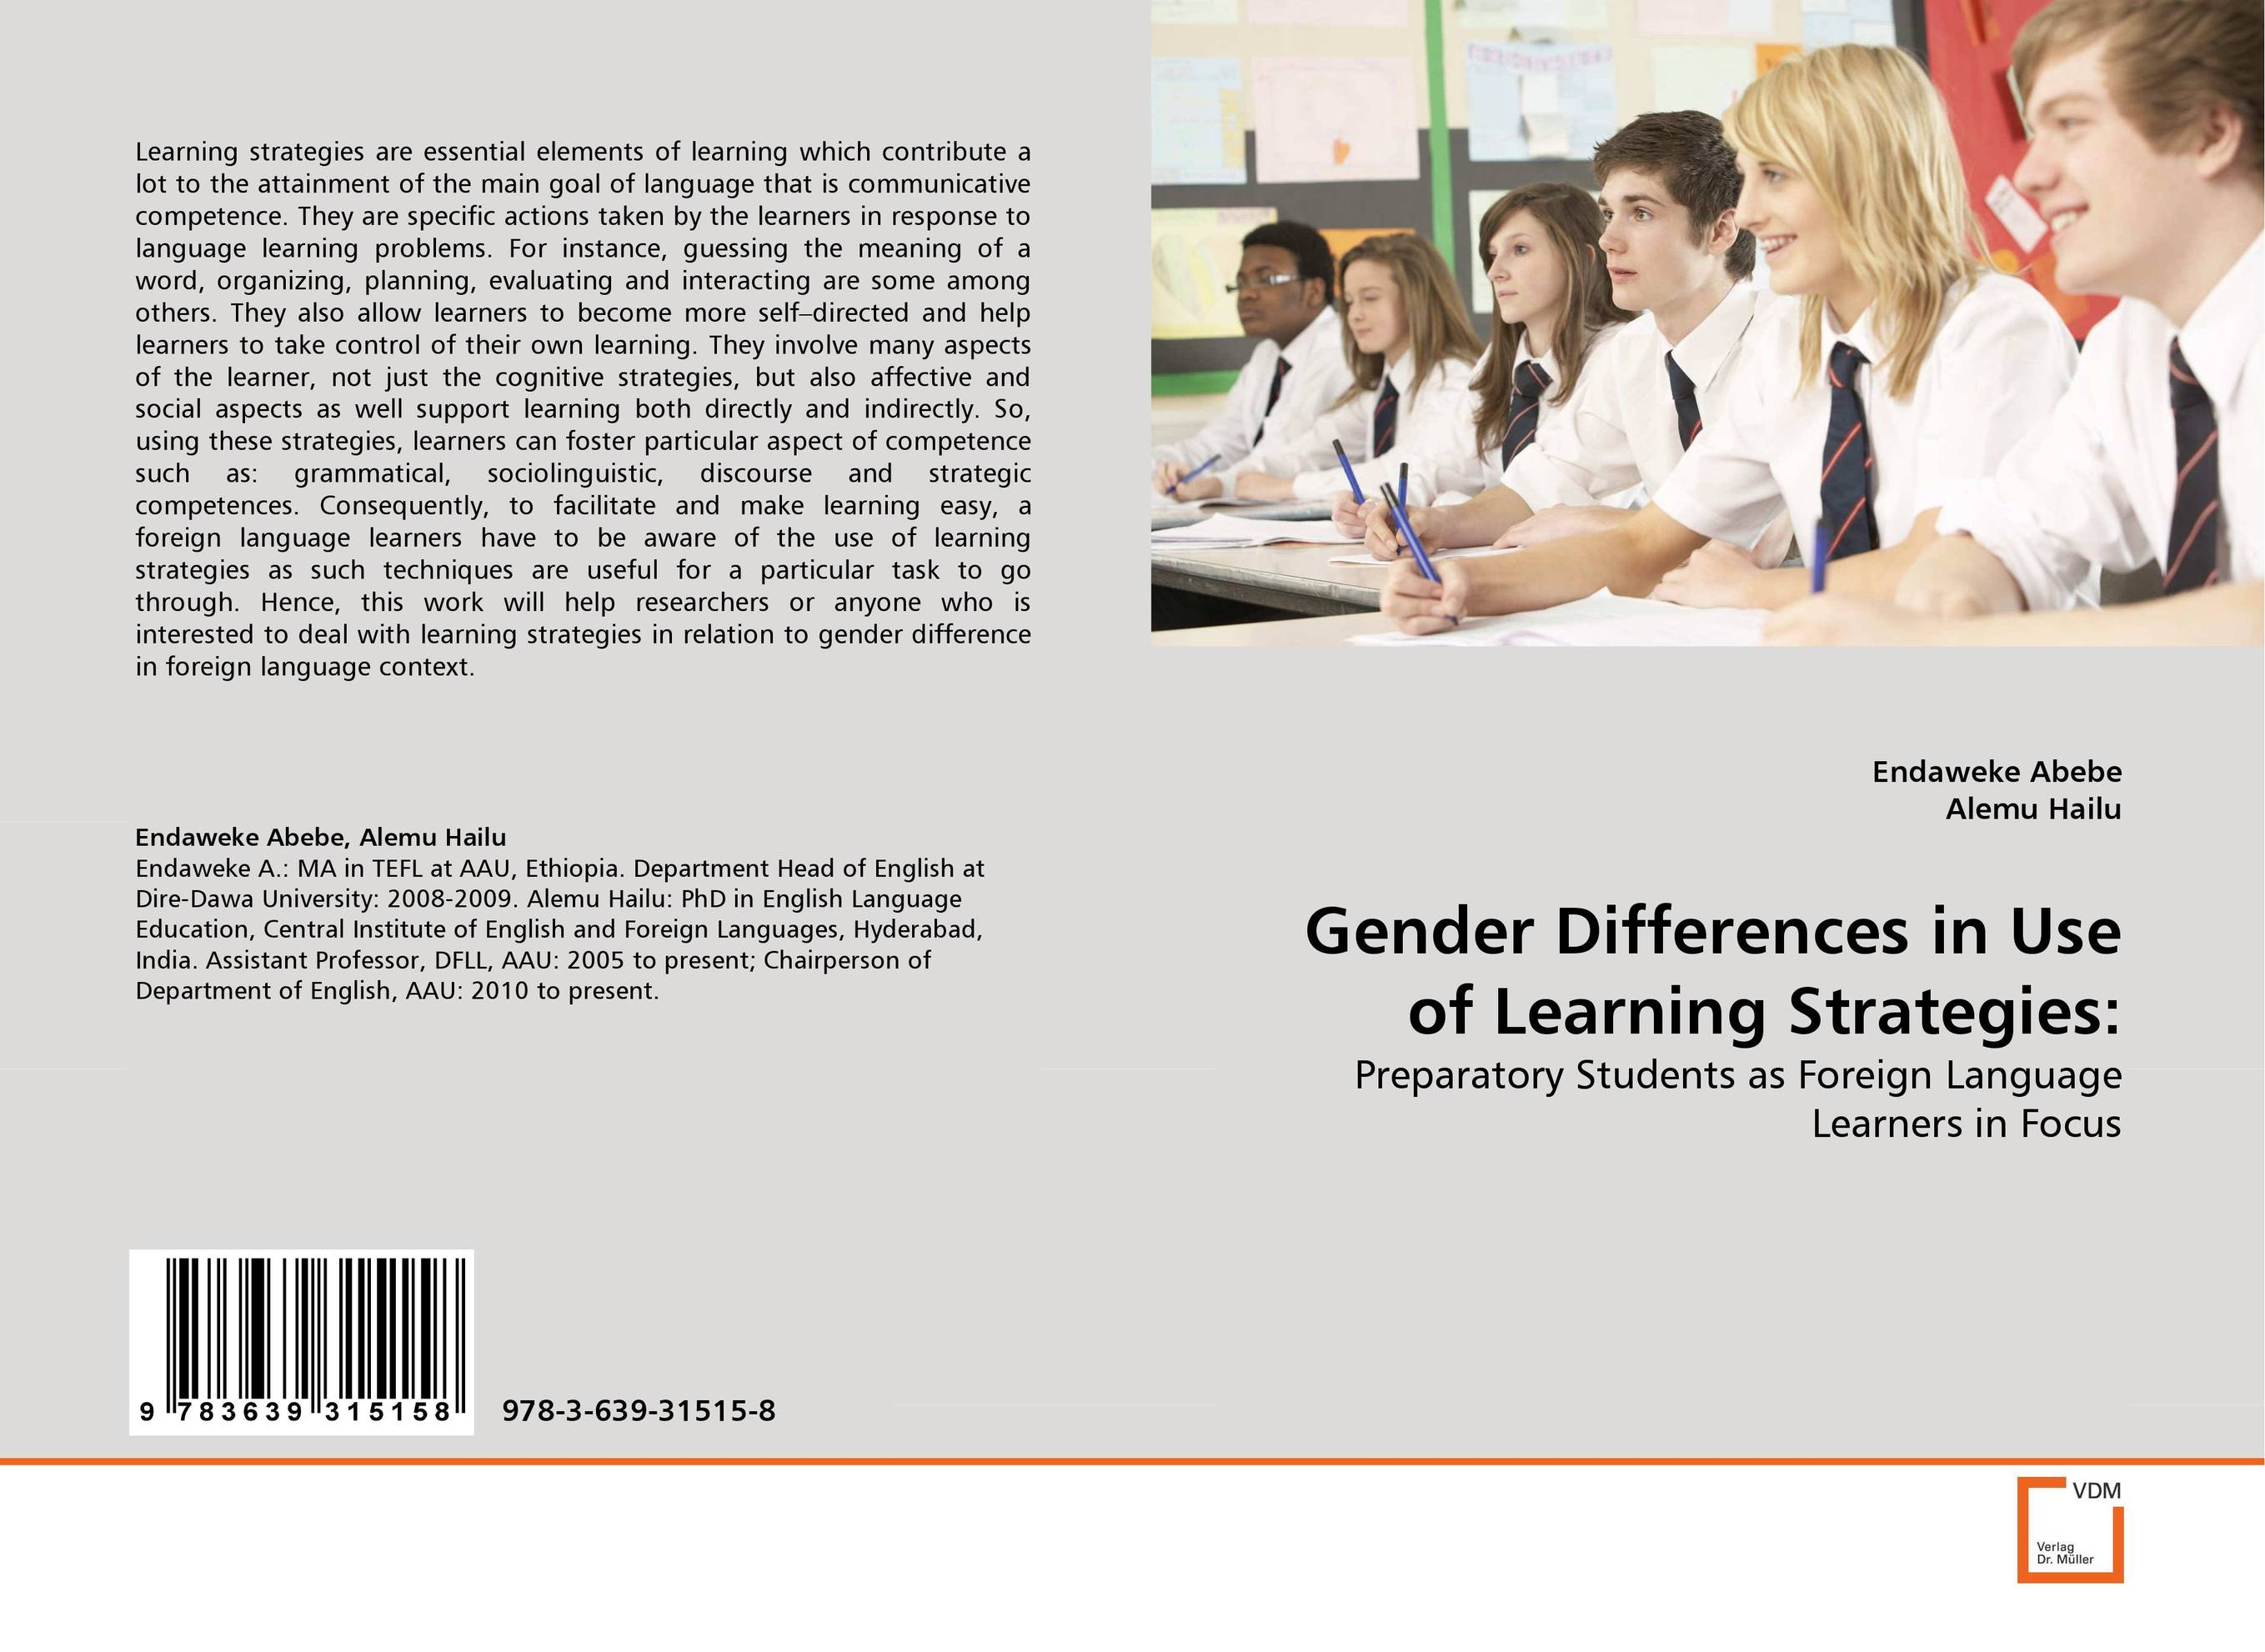 Gender Differences in Use of Learning Strategies: silence in foreign language learning